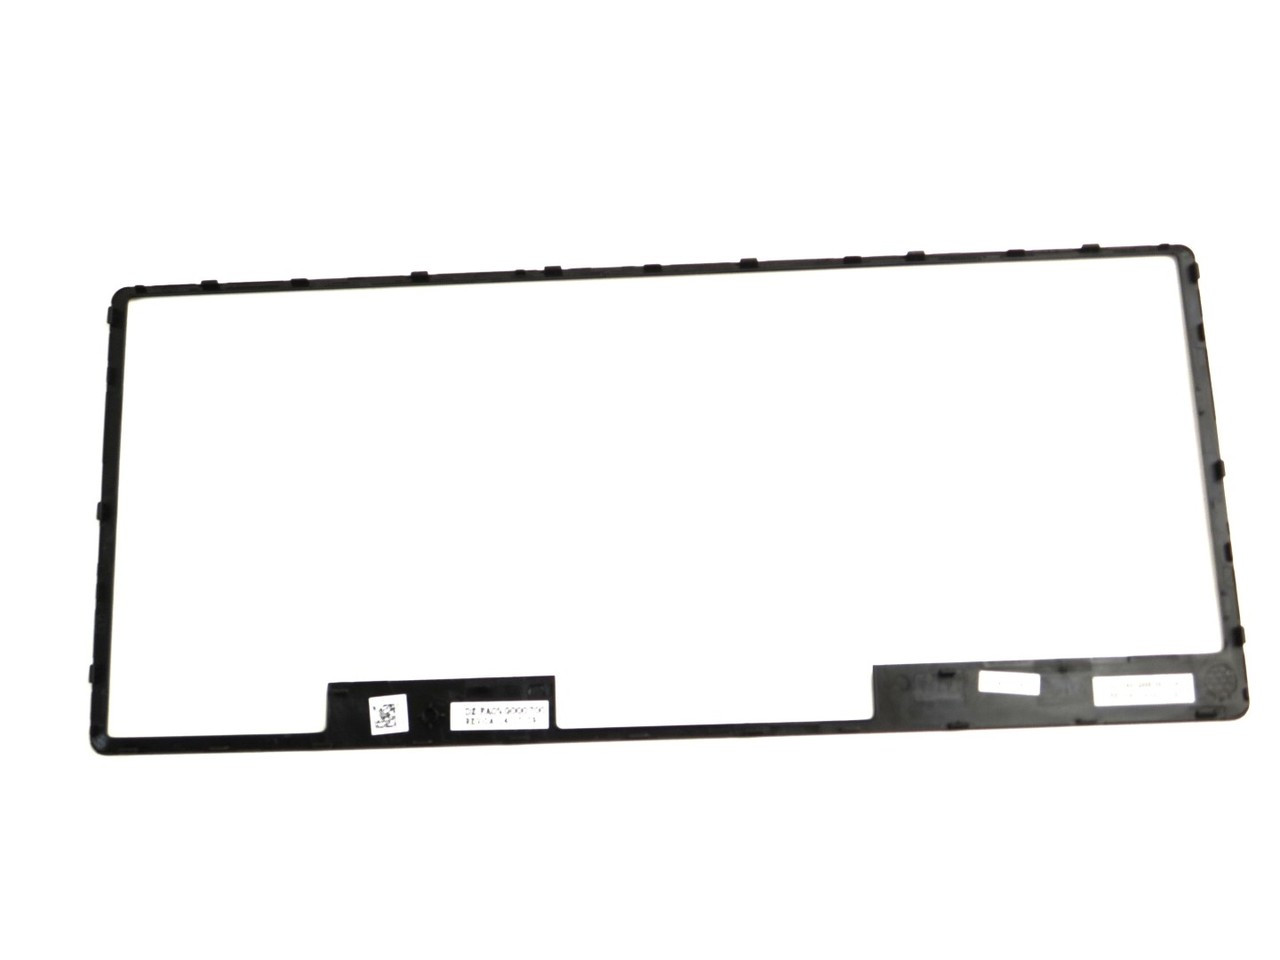 Dell Latitude E6440 Keyboard Bezel Trim Overlay - 07J94